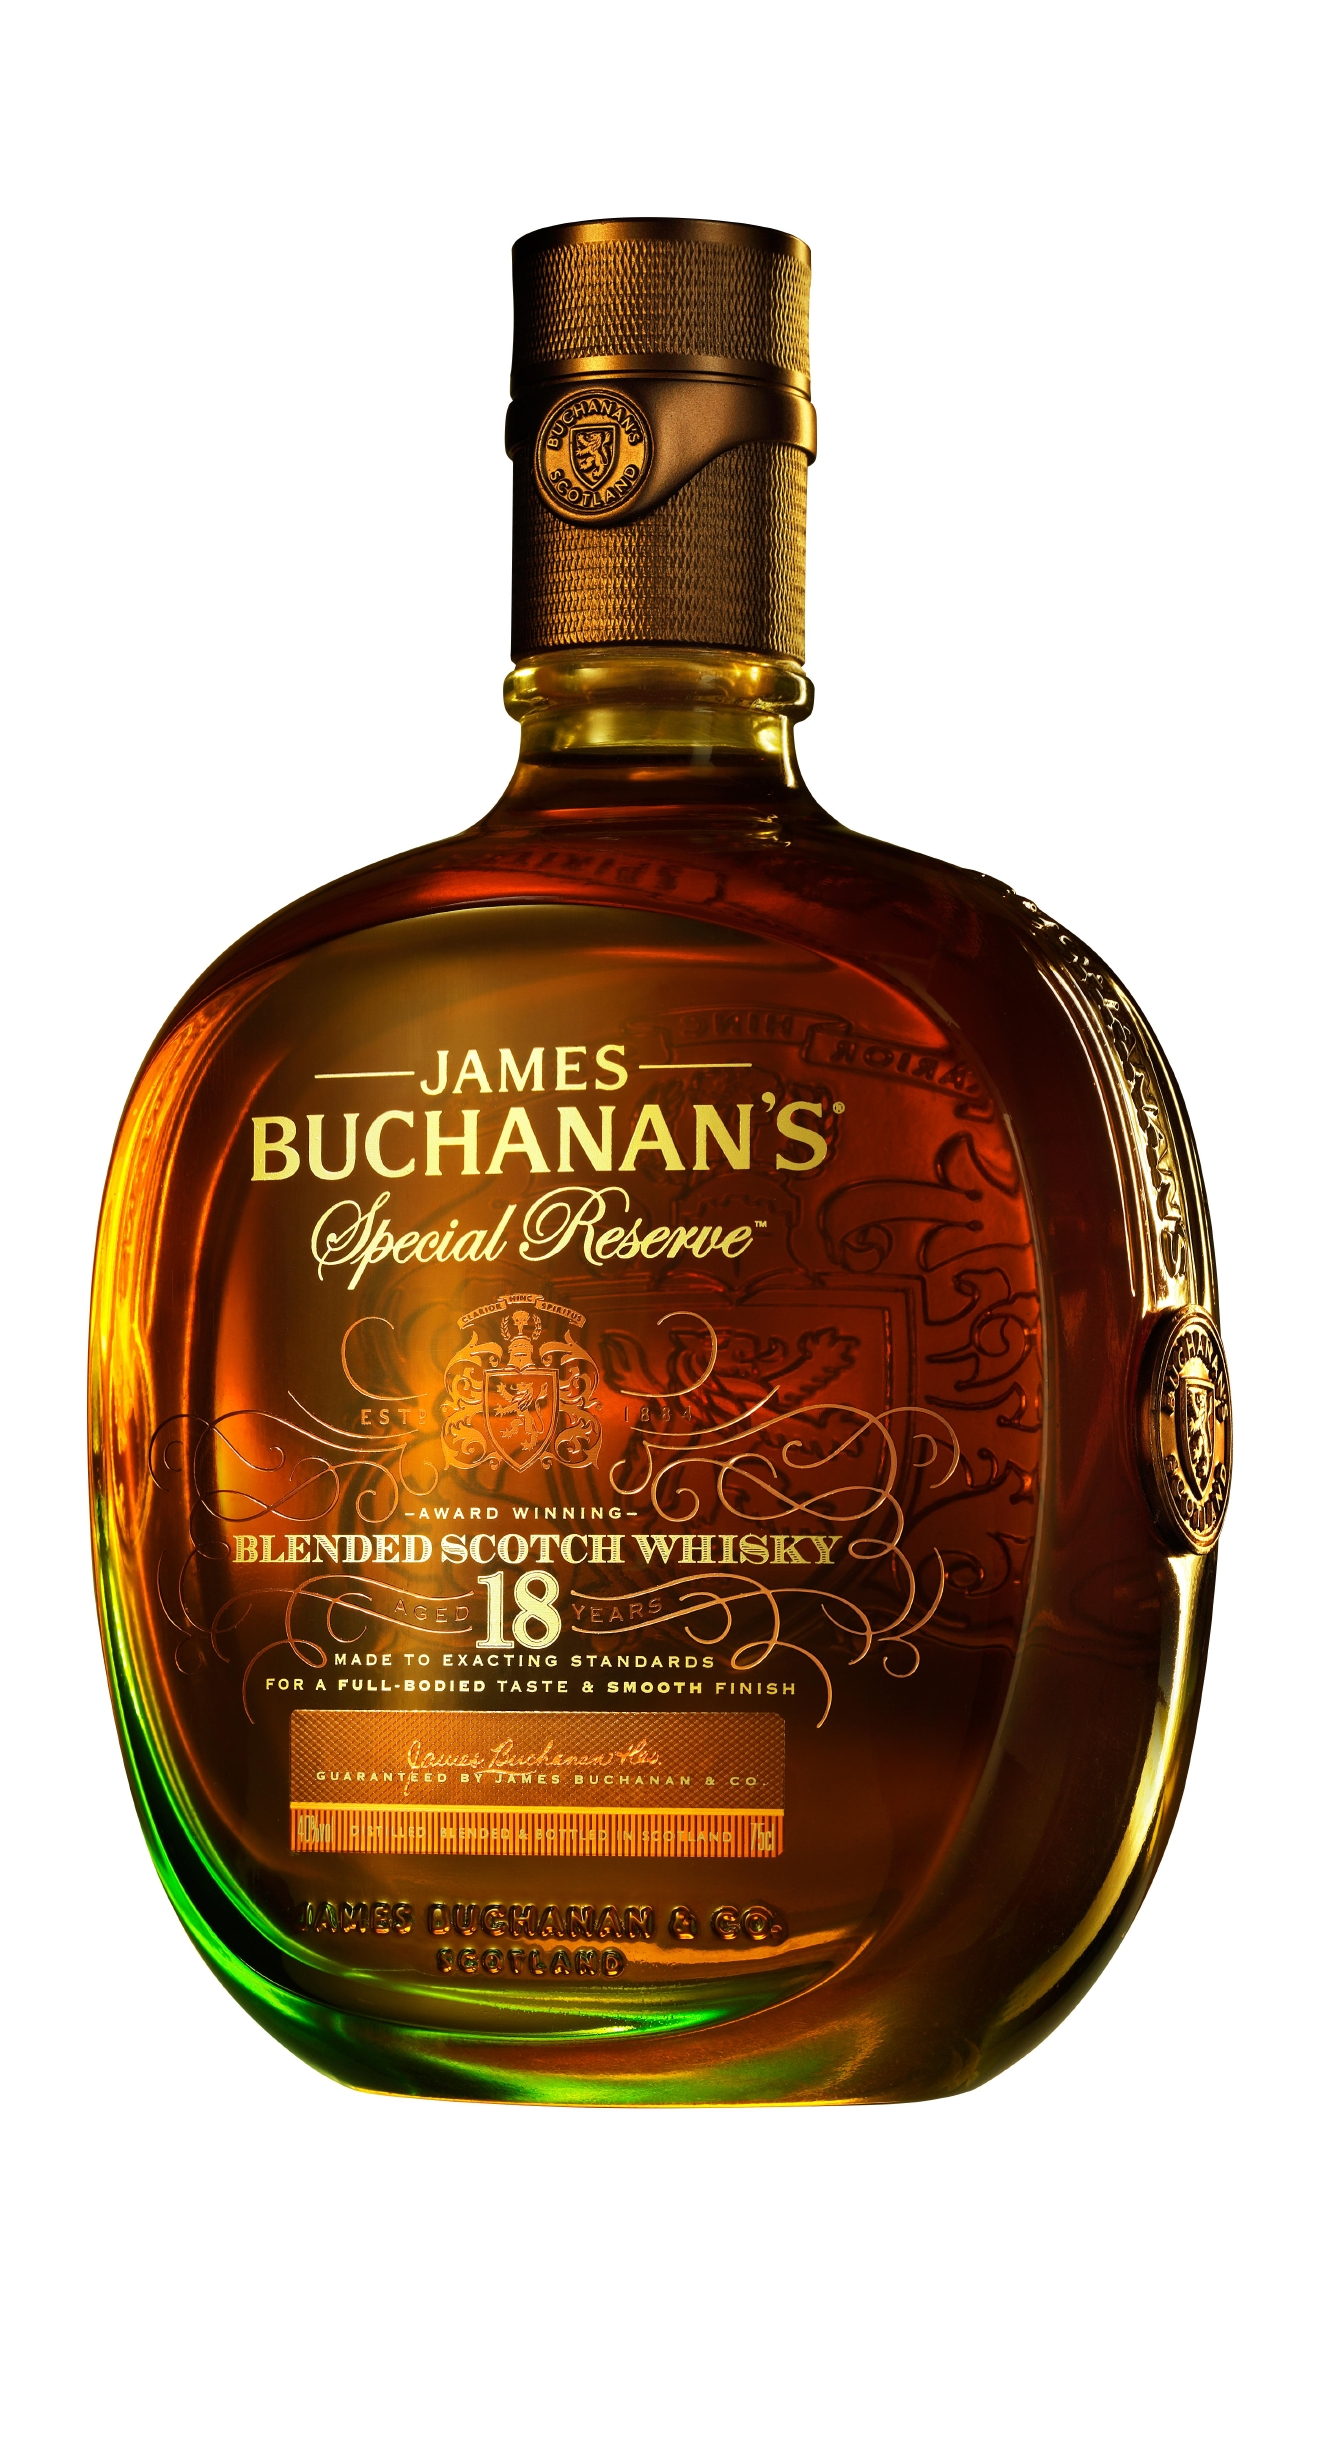 Buchanan's Special Reserve Whisky (Courtesy: Buchanan's Special Reserve)